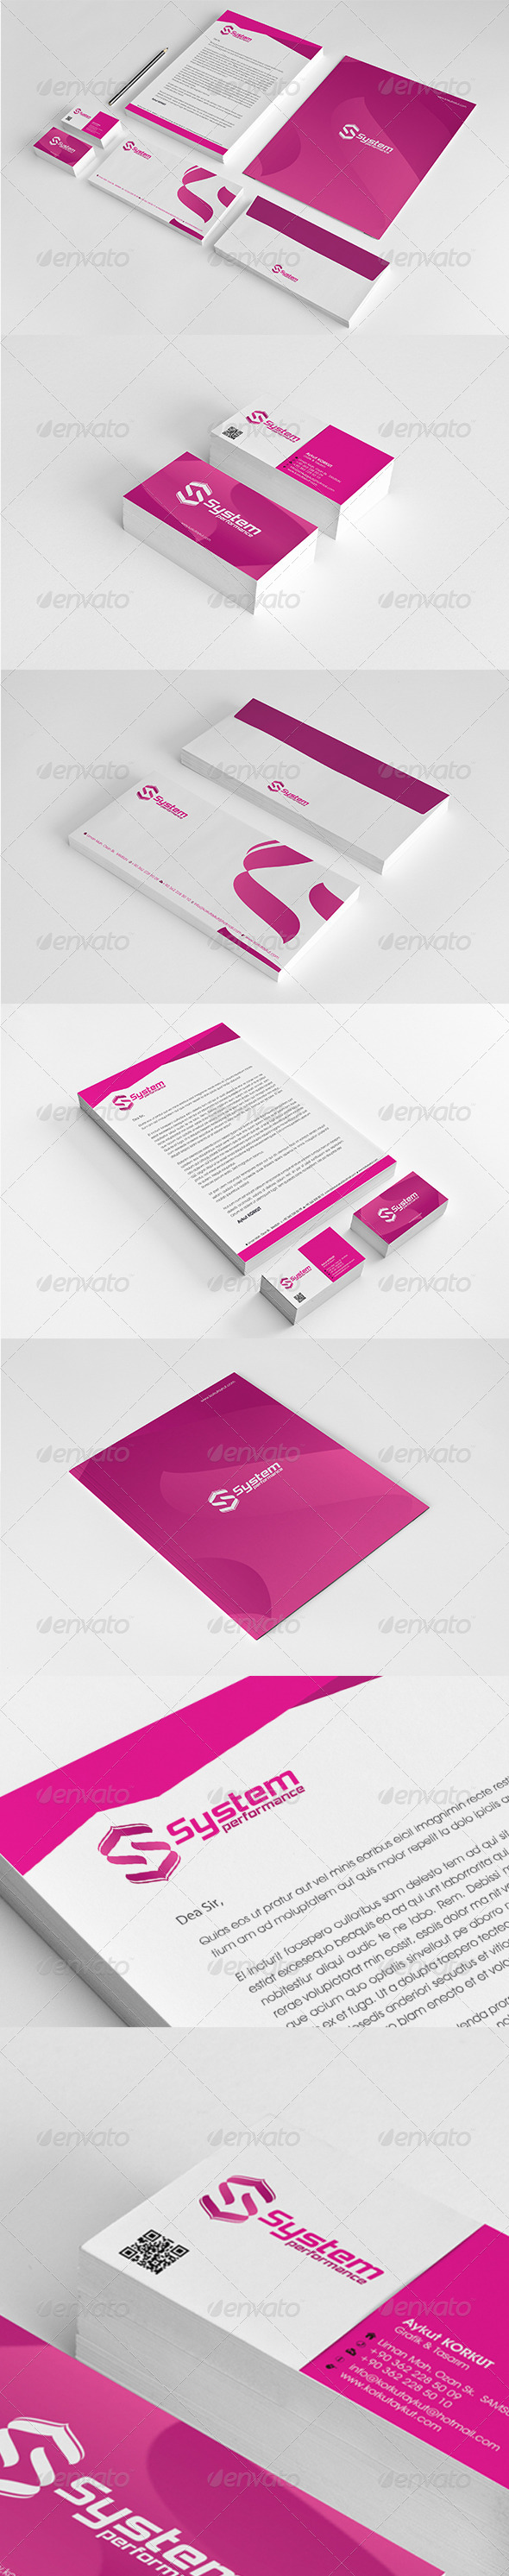 GraphicRiver System Performance Corporate Identity Package 6264052